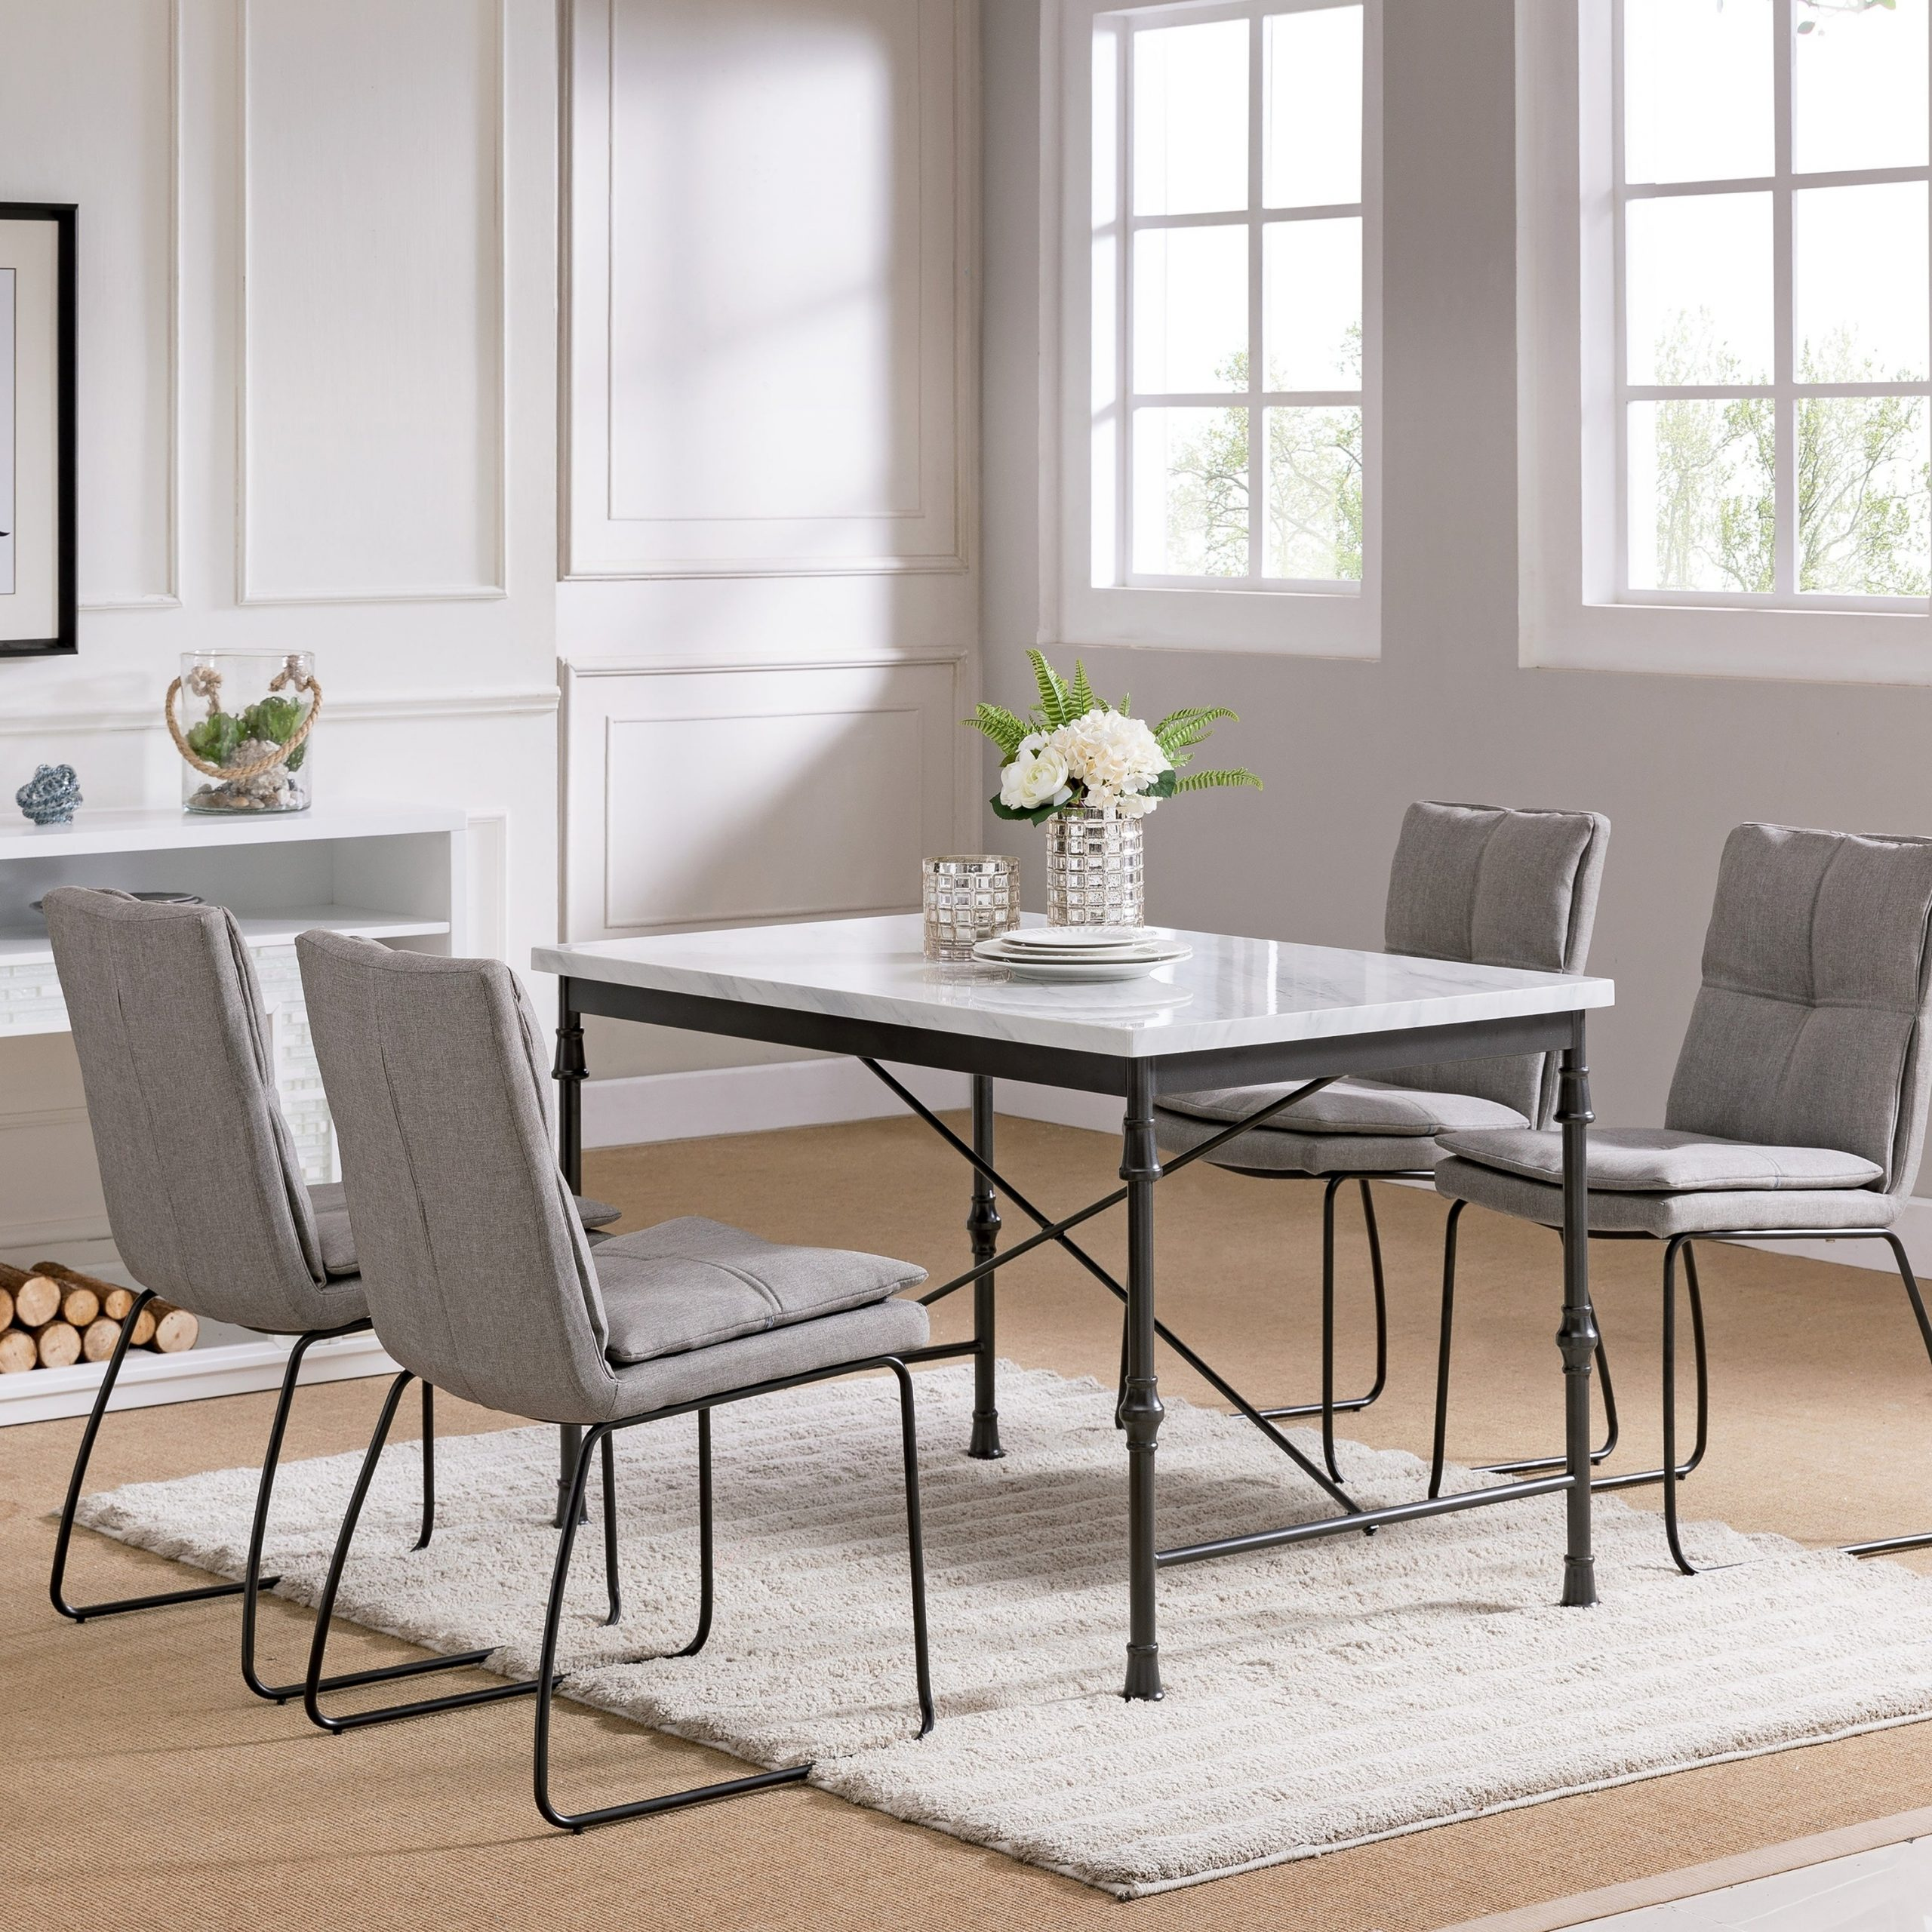 Most Popular Carbon Loft Ivan Faux Marble Dining Table Regarding Faux Marble Finish Metal Contemporary Dining Tables (View 17 of 25)